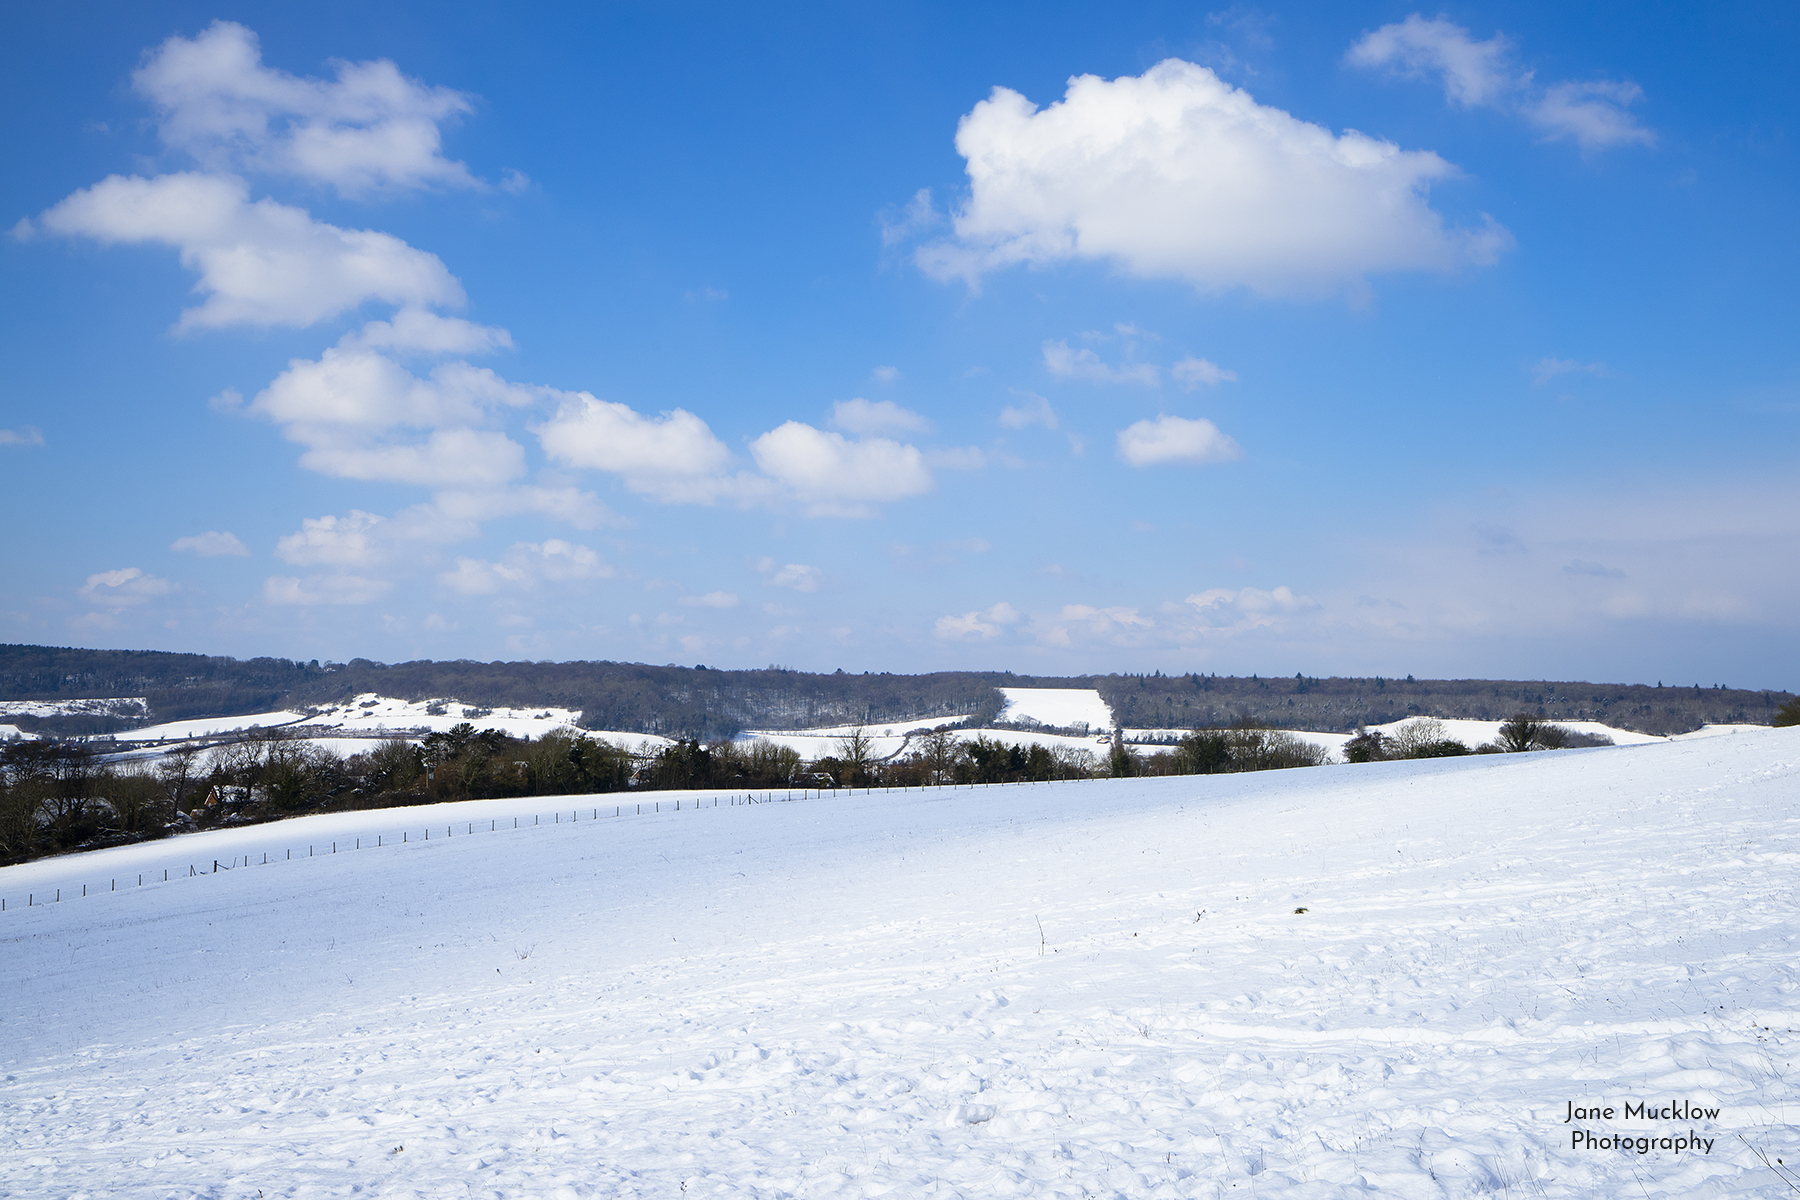 Snowy view to Shoreham, photograph by Jane Mucklow